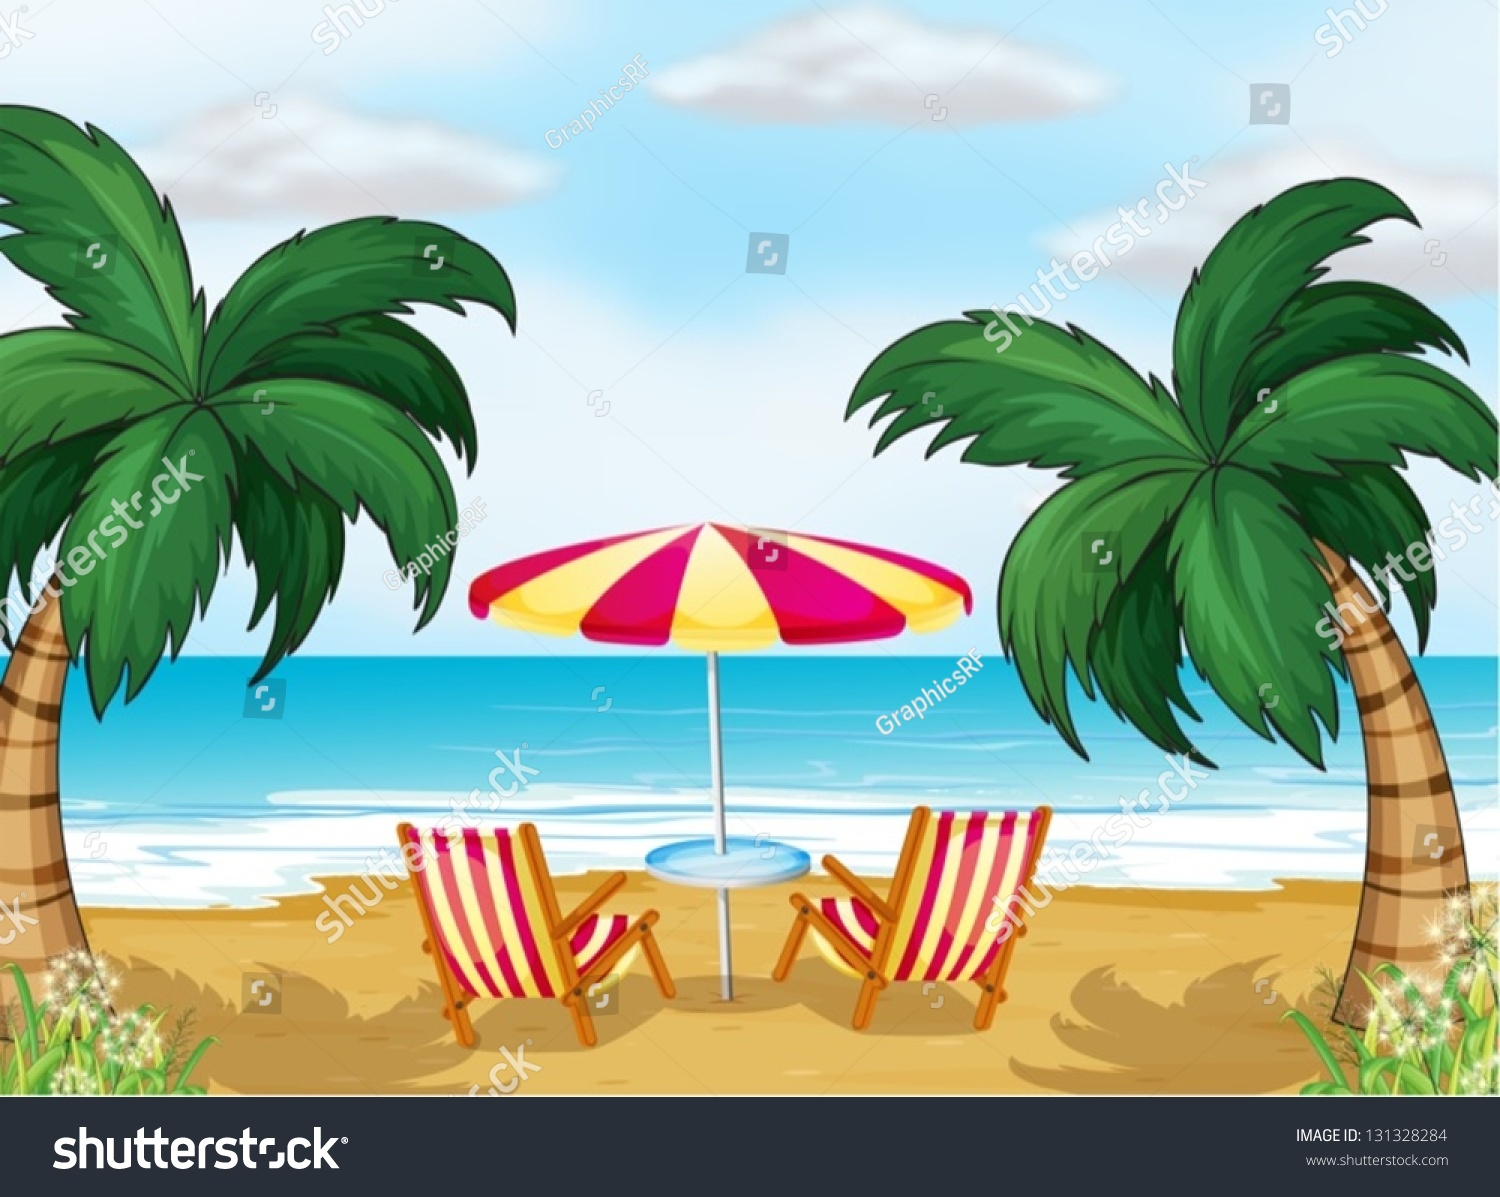 Beach with chairs - Illustration Of The View Of The Beach With A Beach Umbrella And Chairs